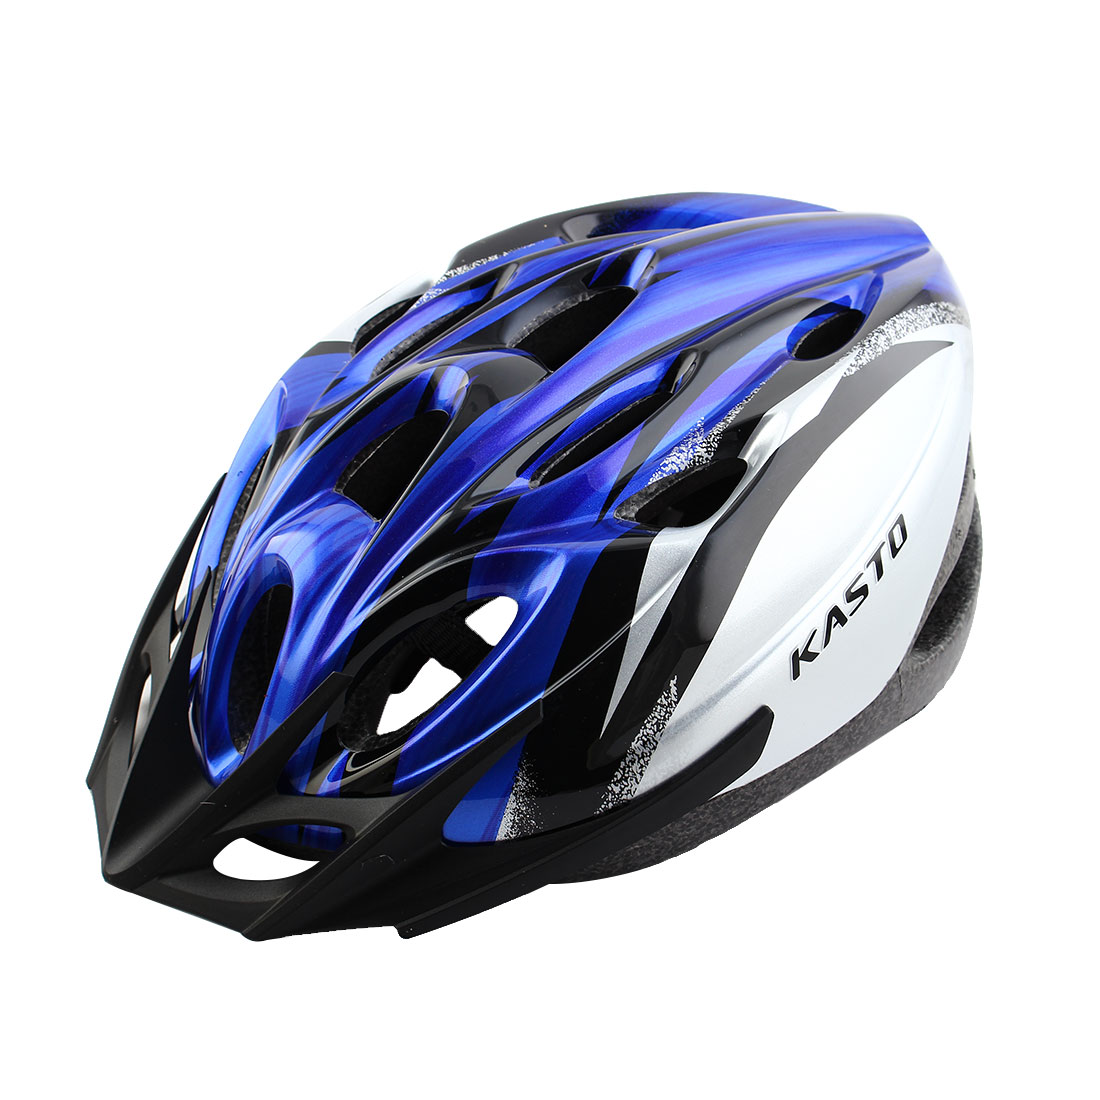 Unisex LED Light Removable Visor Outdoor Sports Cap Portable Hat Adjustable Safety Bicycle Bike Helmet Sapphire Blue